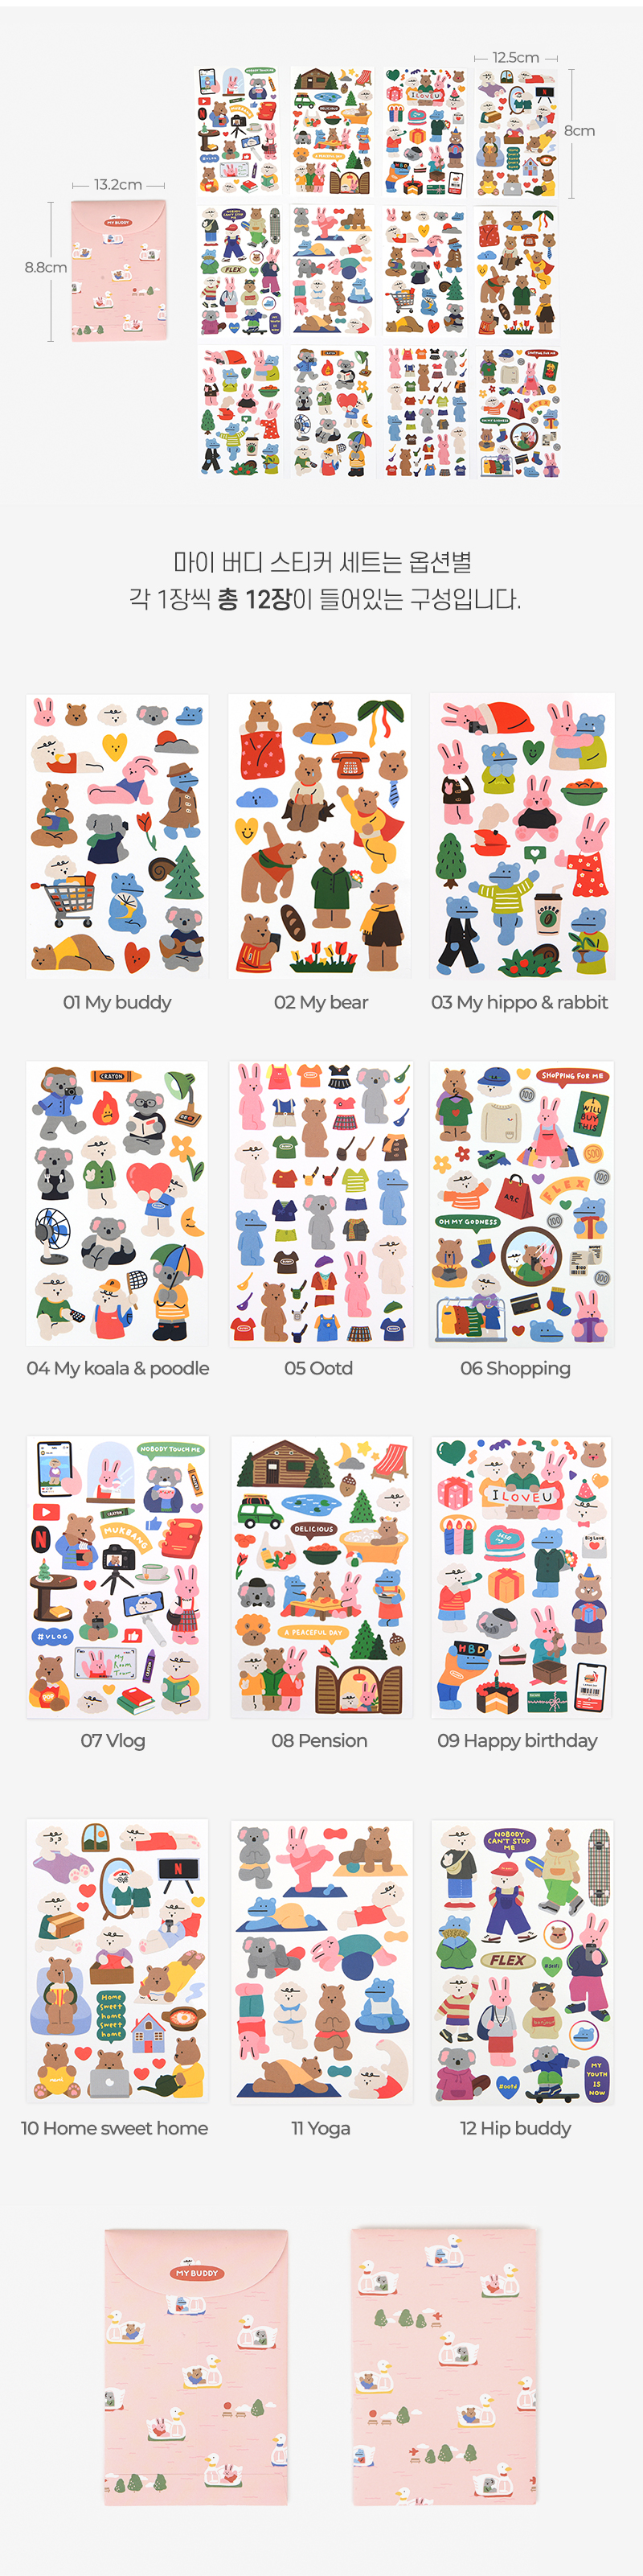 mybuddy-sticker-set-detail.jpg